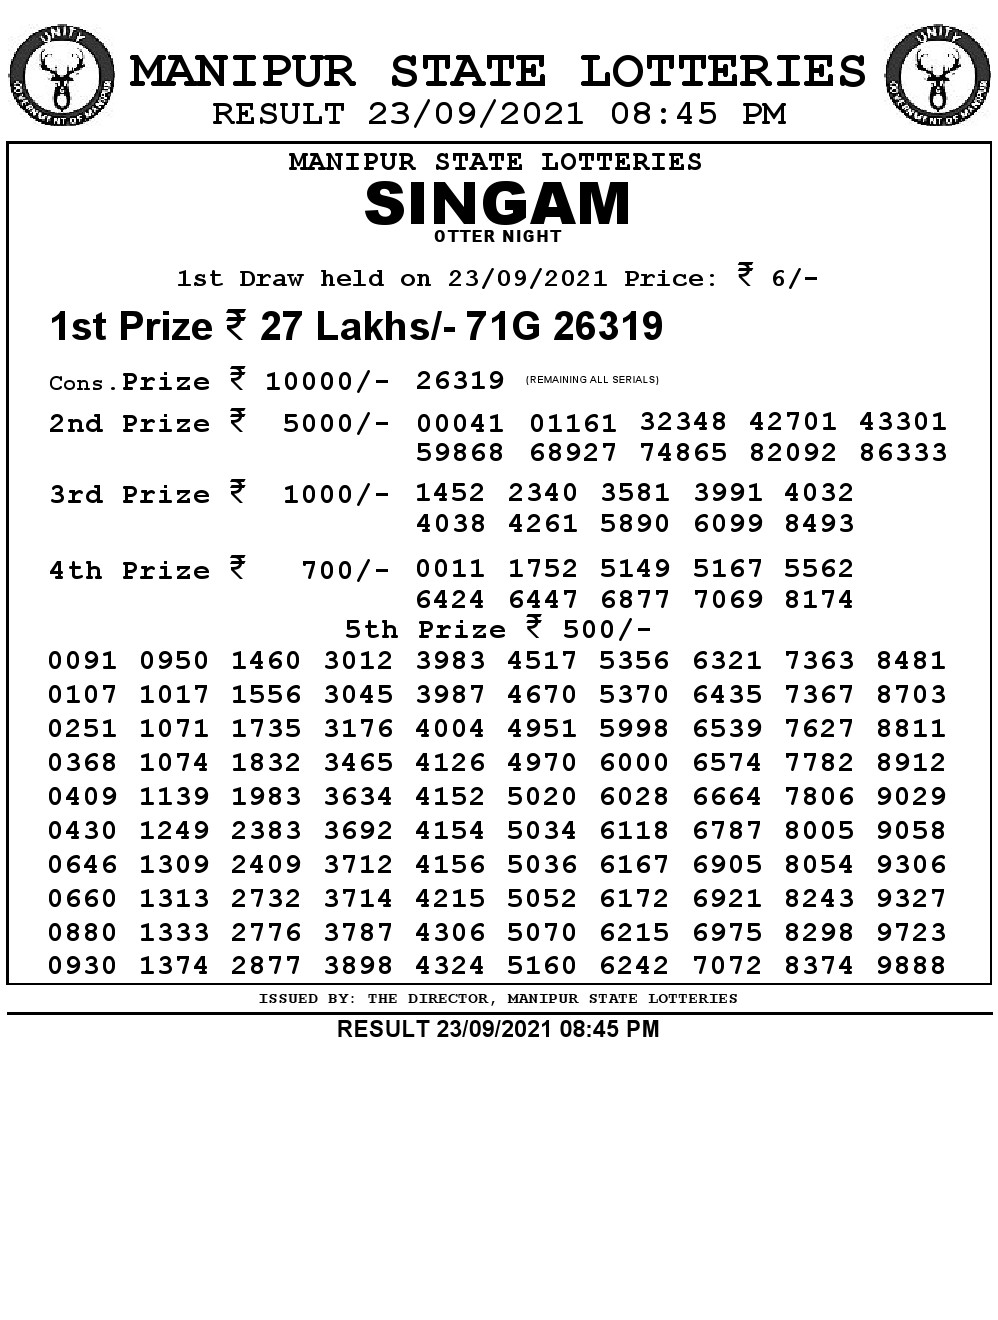 Manipur Lottery Result today -23/09/2021 singam 8:45pm pdf download